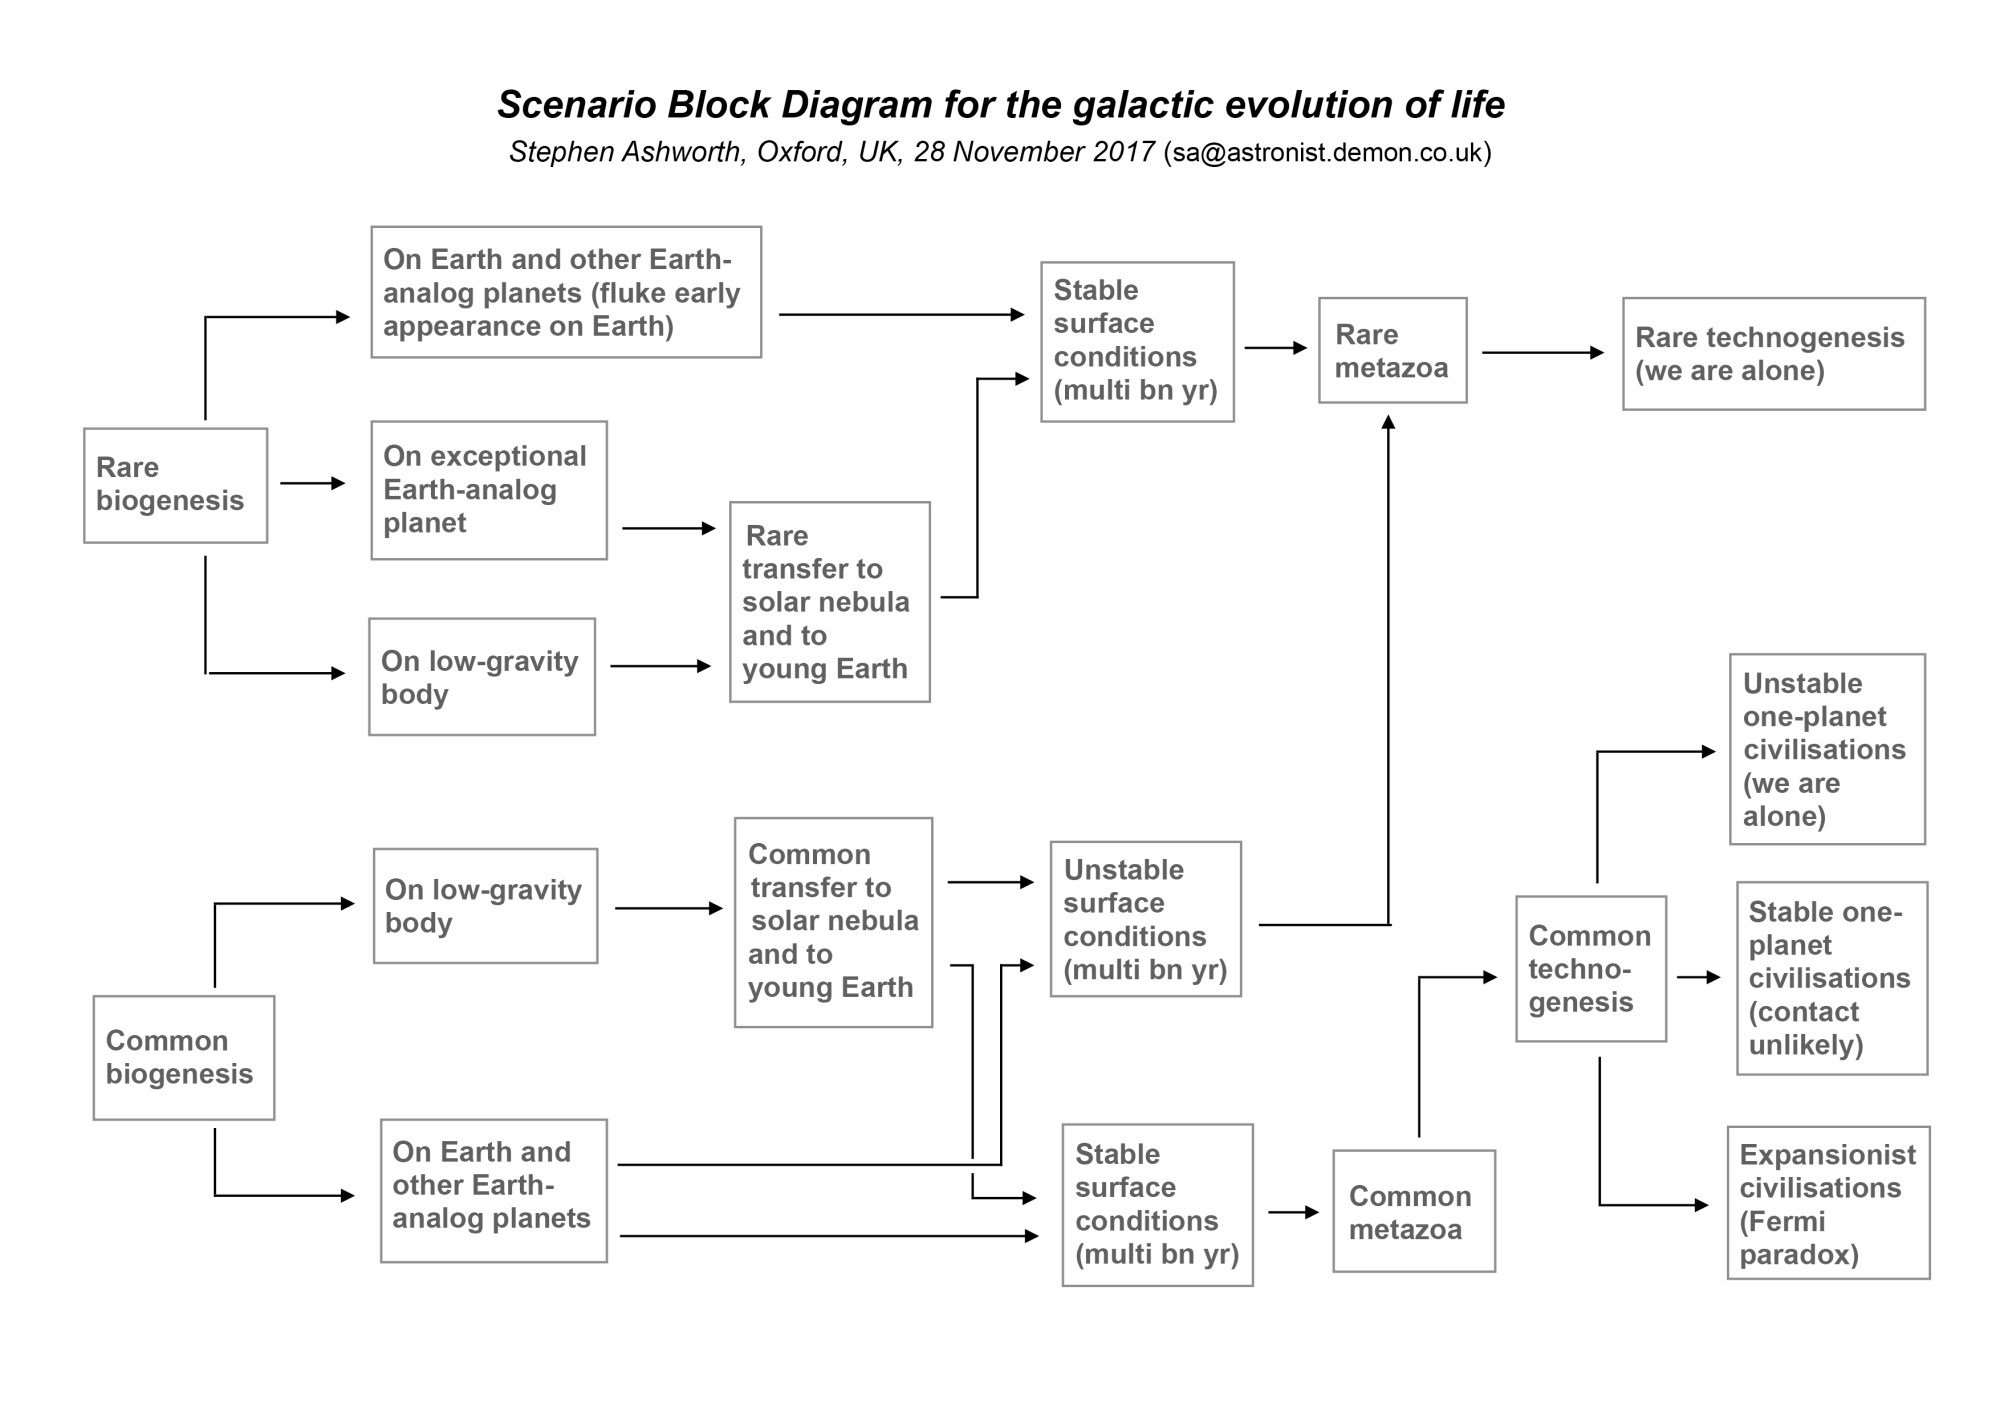 hight resolution of scenario block diagram analysis of the galactic evolution of life